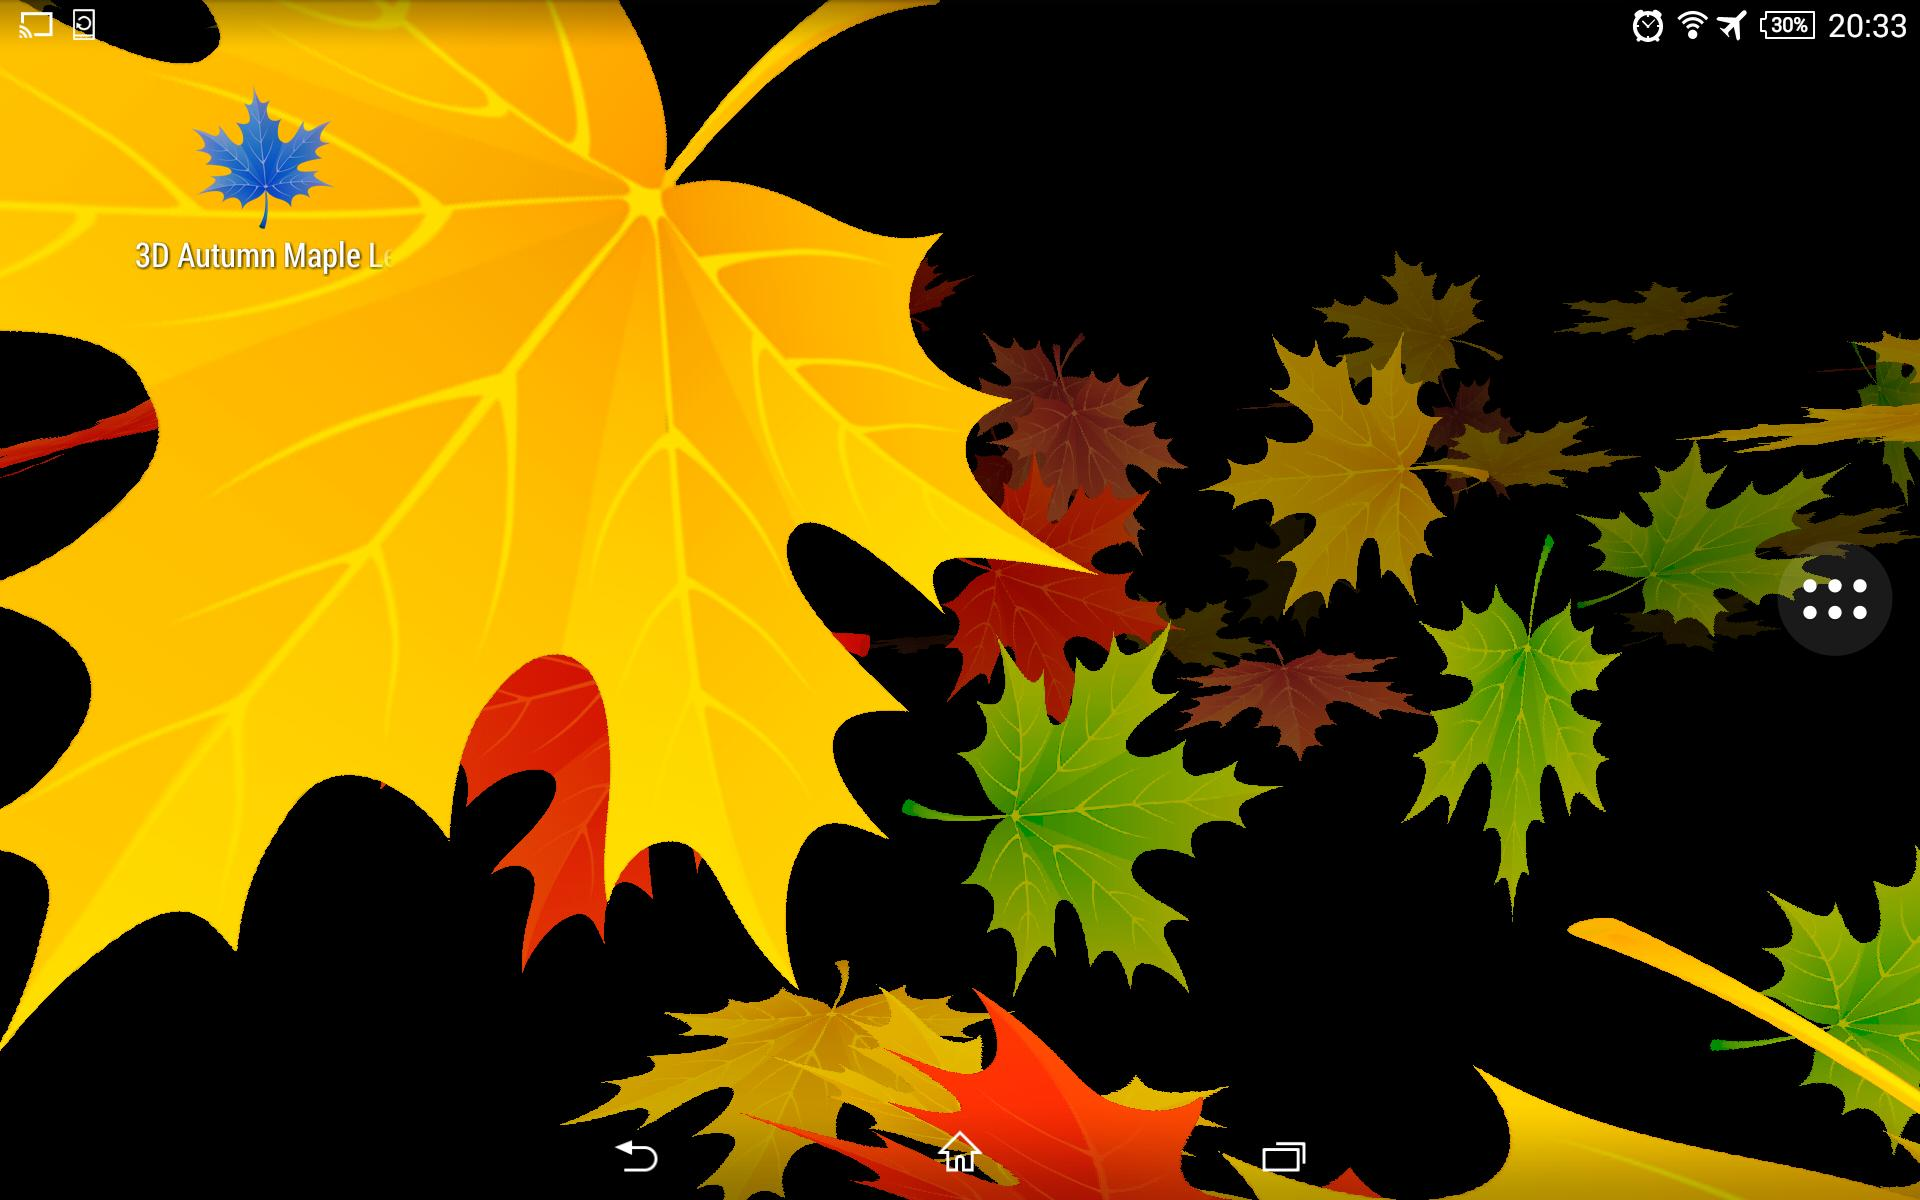 3D 🍁🍃🍂 Autumn Maple Leaves Free for Android - APK Download